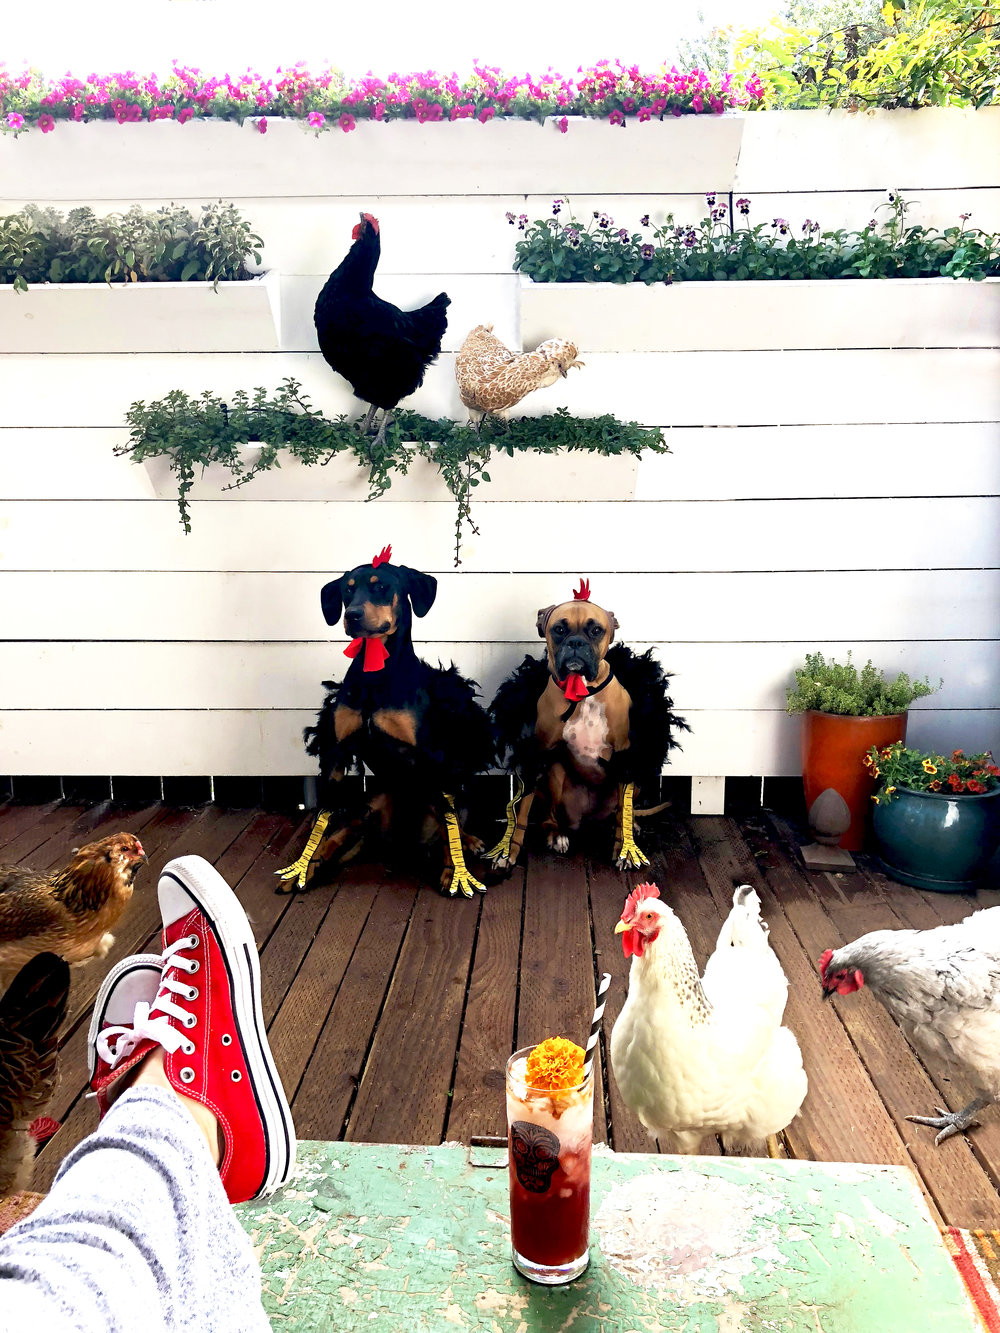 Drinkingwithchickens.com